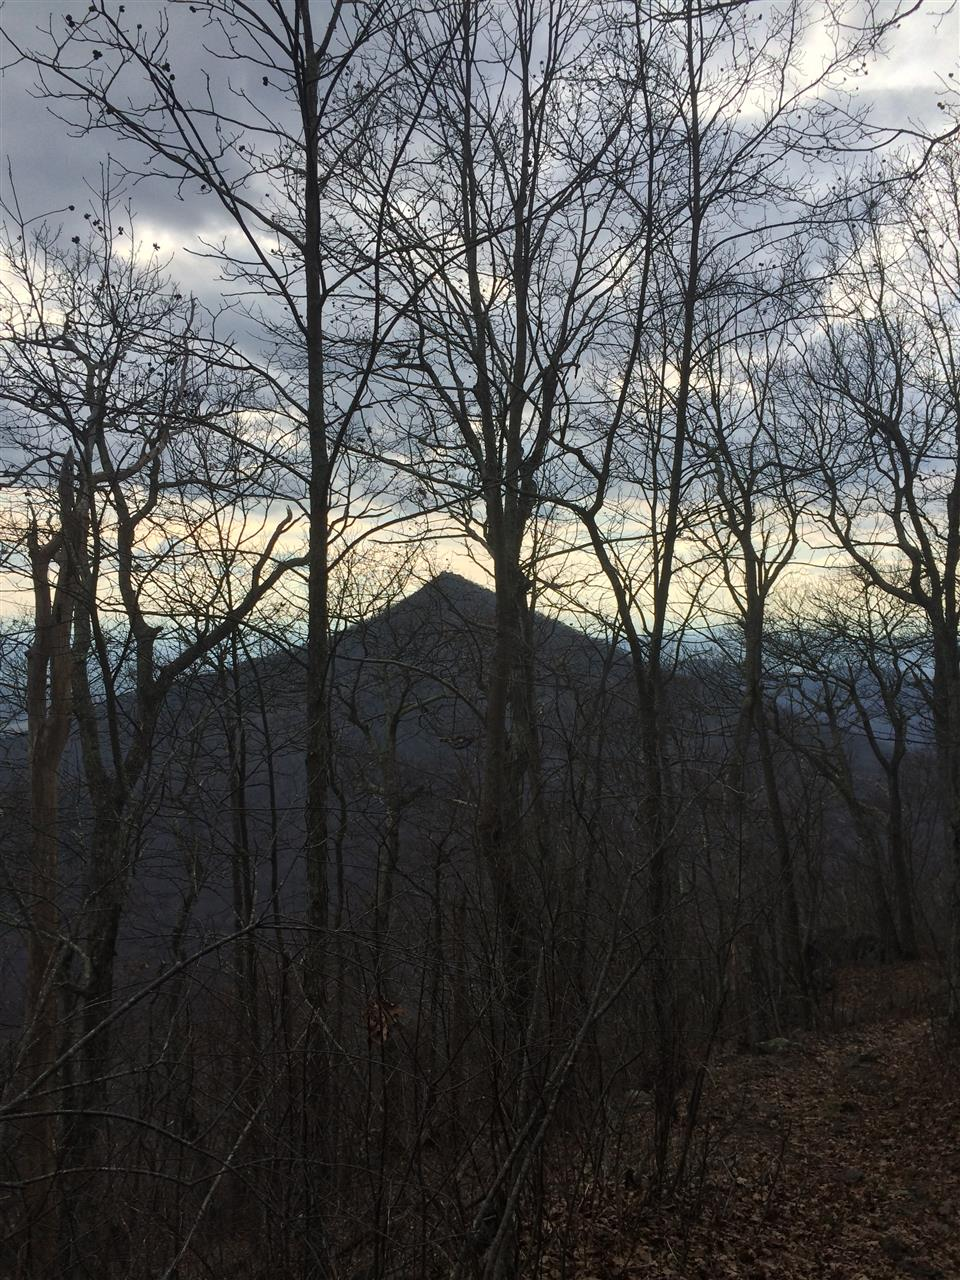 SharpTop view from FlatTop, Peaks of Otter, Bedford, VA